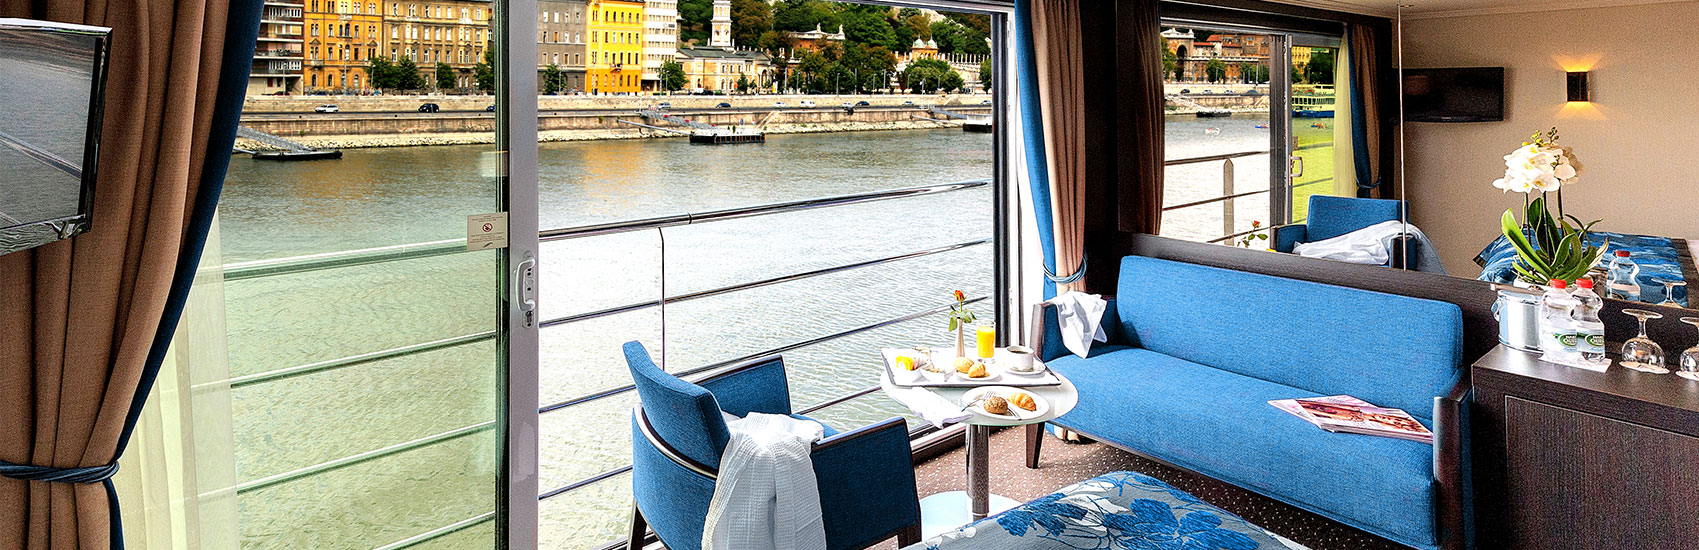 Save Now with Avalon Waterways 1